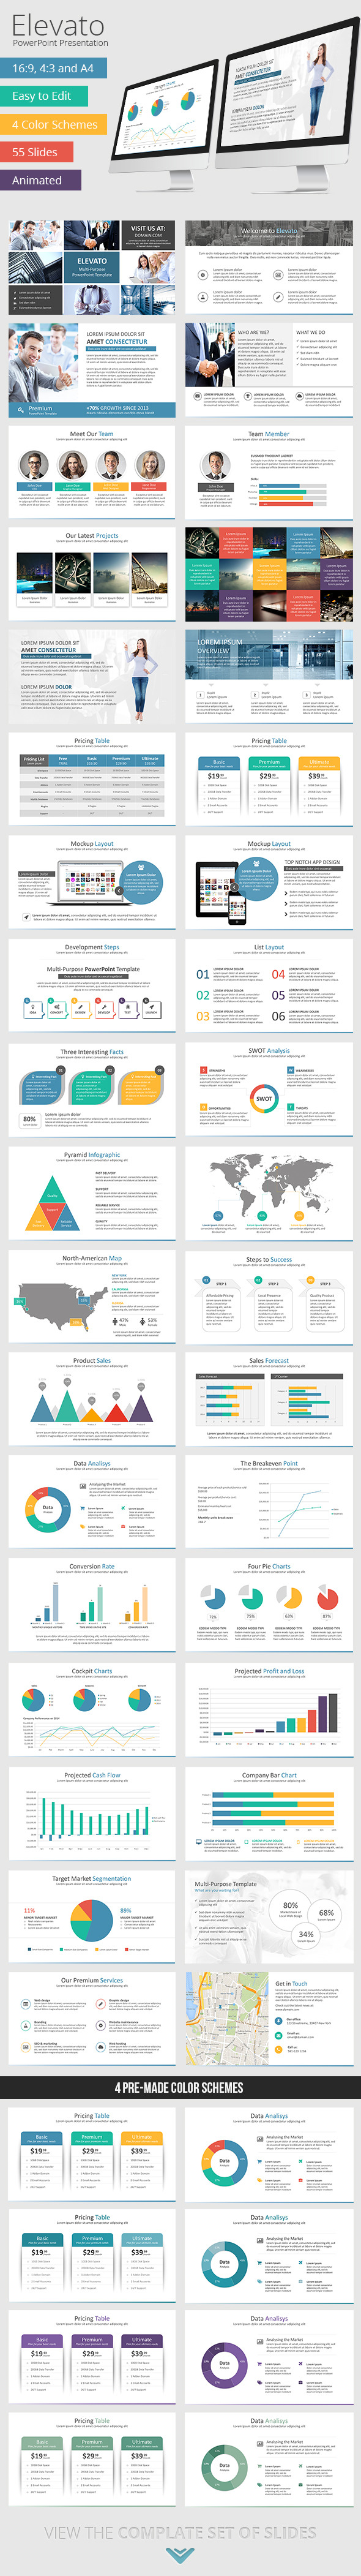 GraphicRiver Elevato PowerPoint Presentation Template 8828070